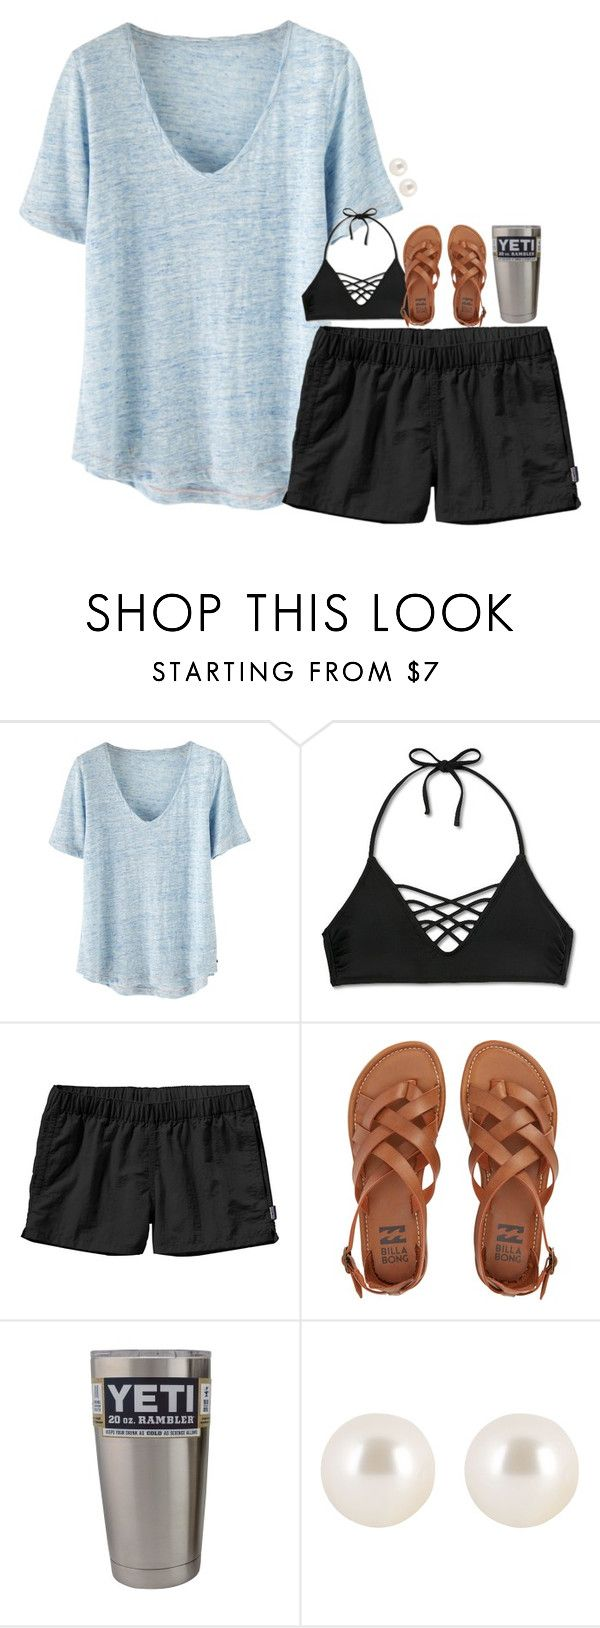 """""""beach☀️"""" by hmcdaniel01 ❤ liked on Polyvore featuring Wrap, Xhilaration, Patagonia, Billabong and Henri Bendel"""